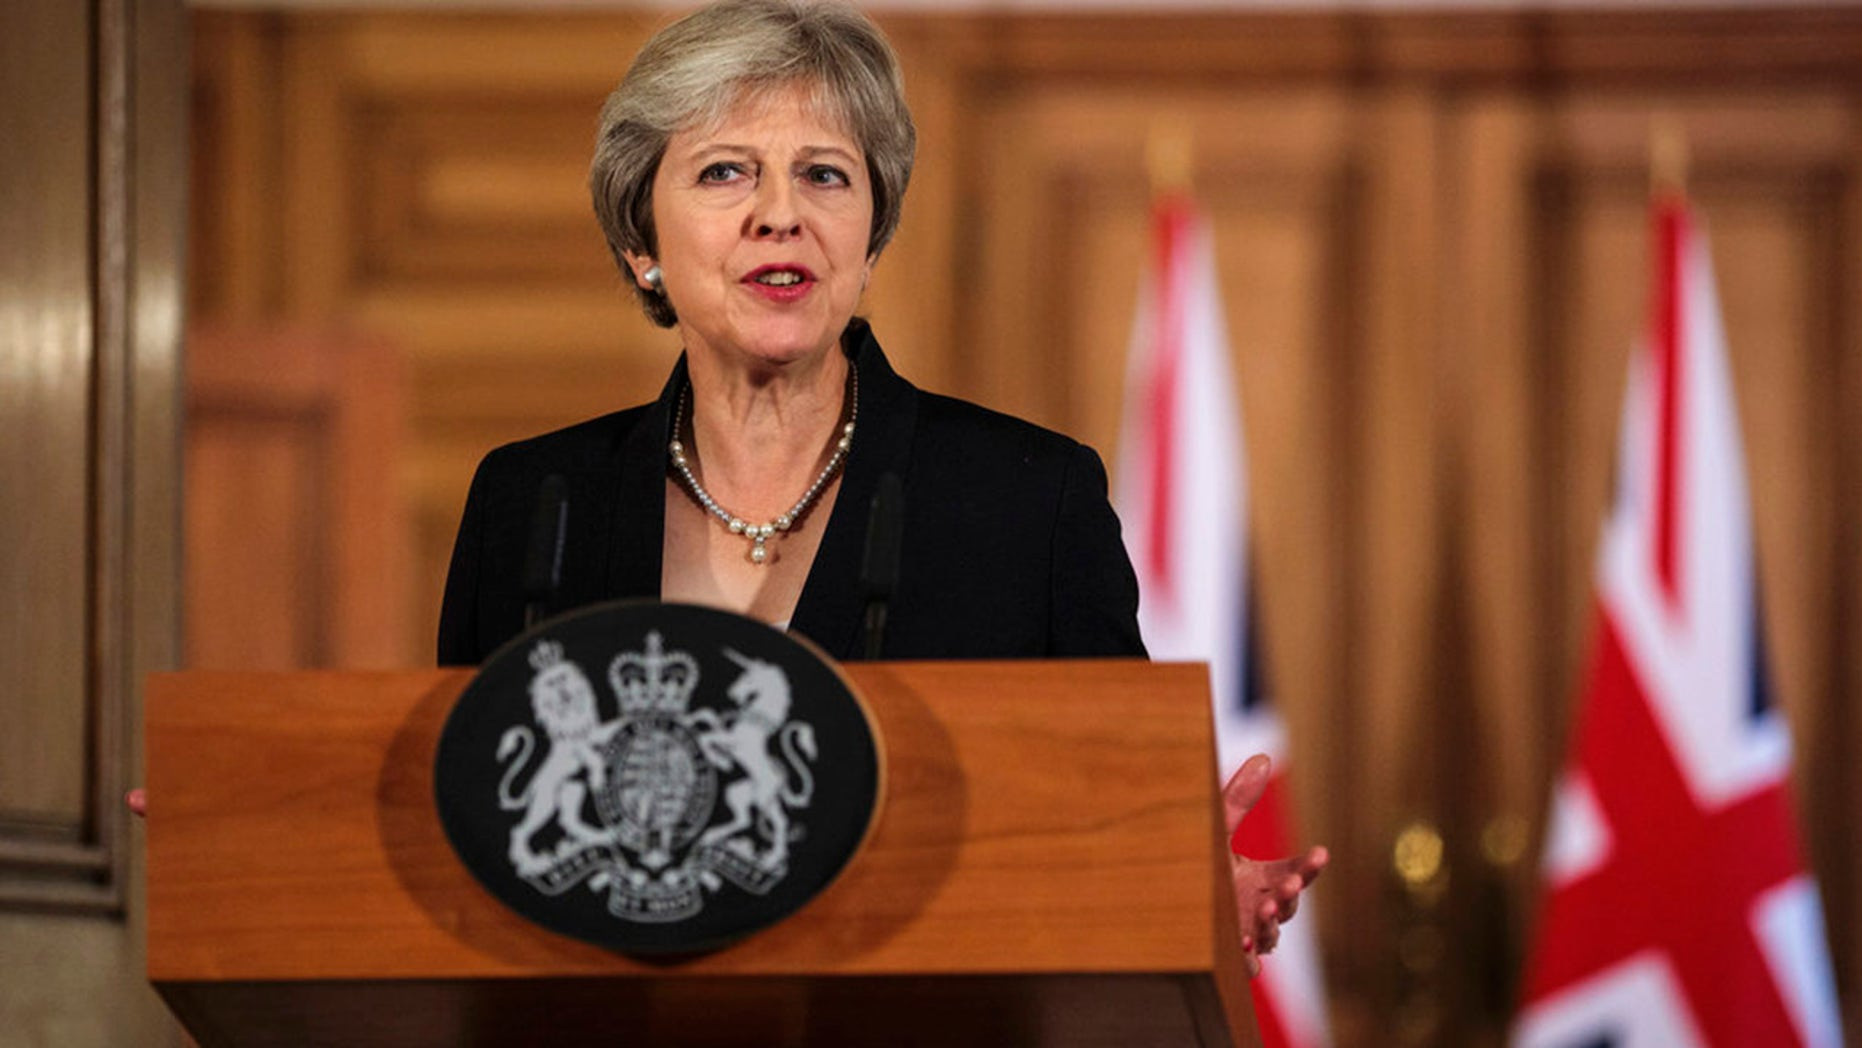 Prime Minister Theresa May warned the EU that she will not overturn Britain's 2016 decision to leave the bloc.